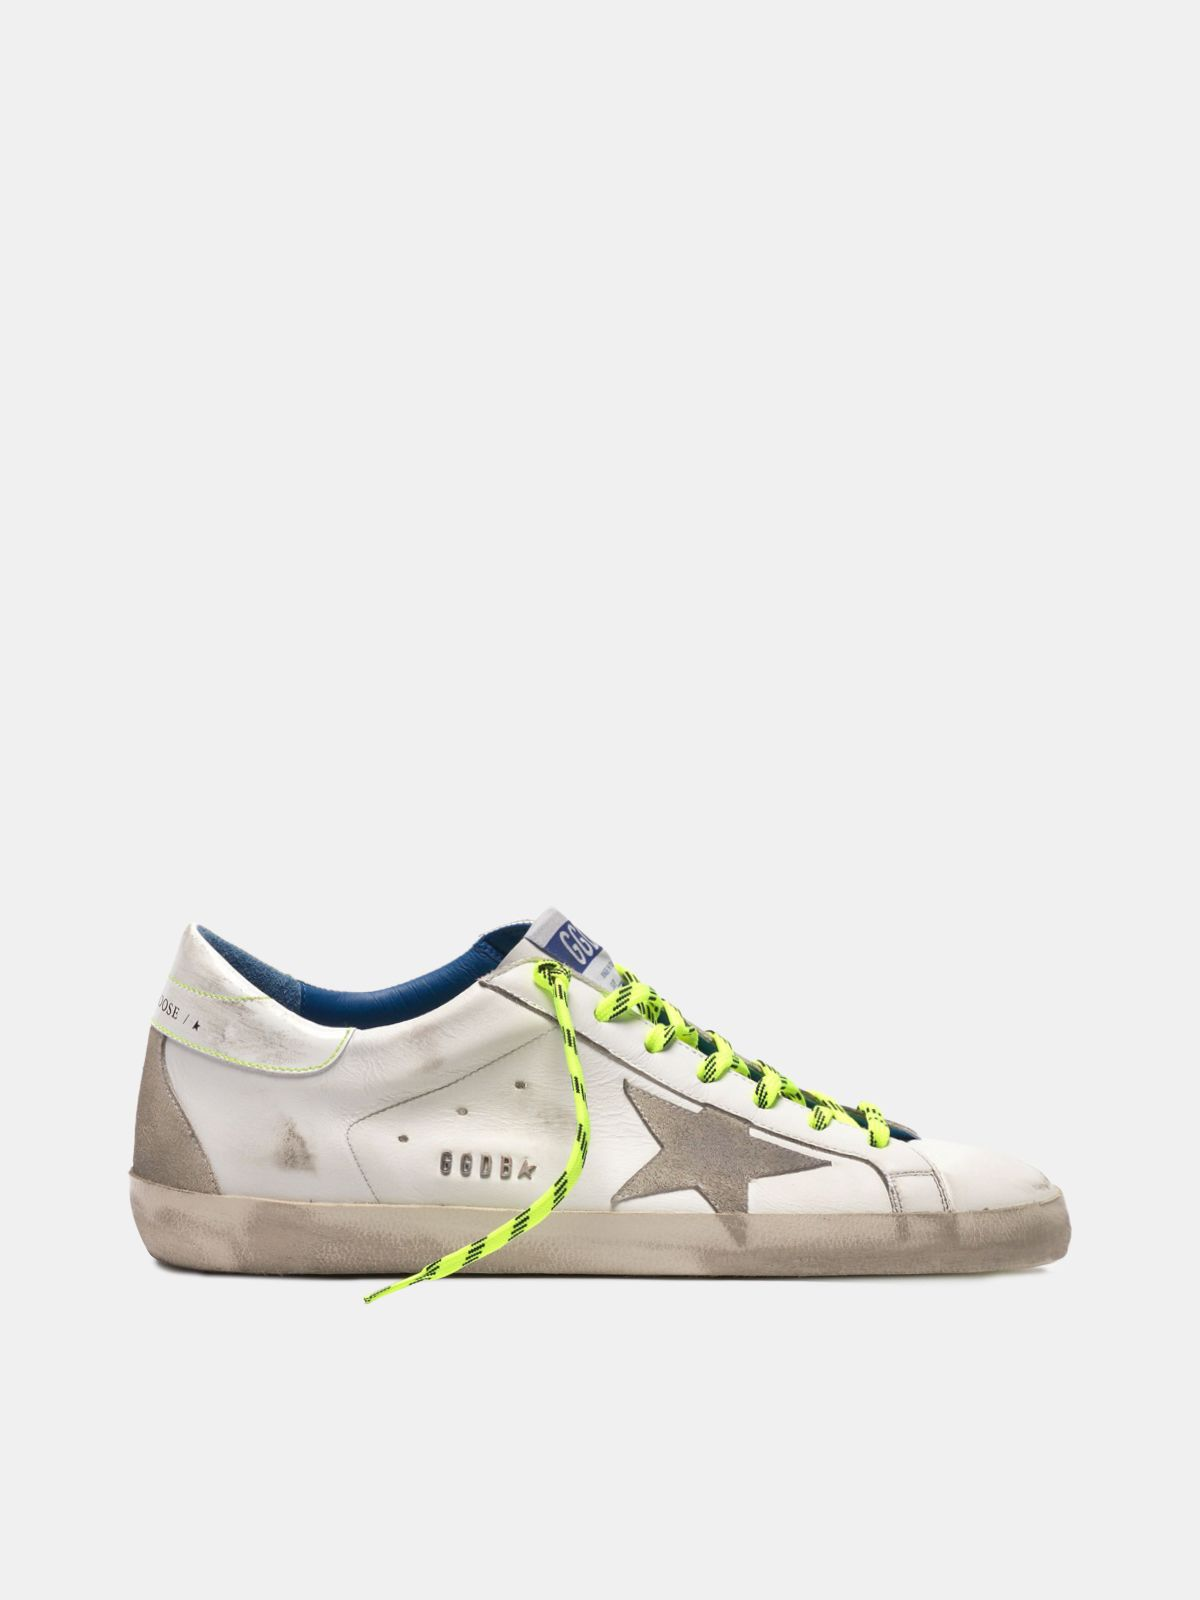 Golden Goose - Super-Stars sneakers with neon-yellow hiking laces in